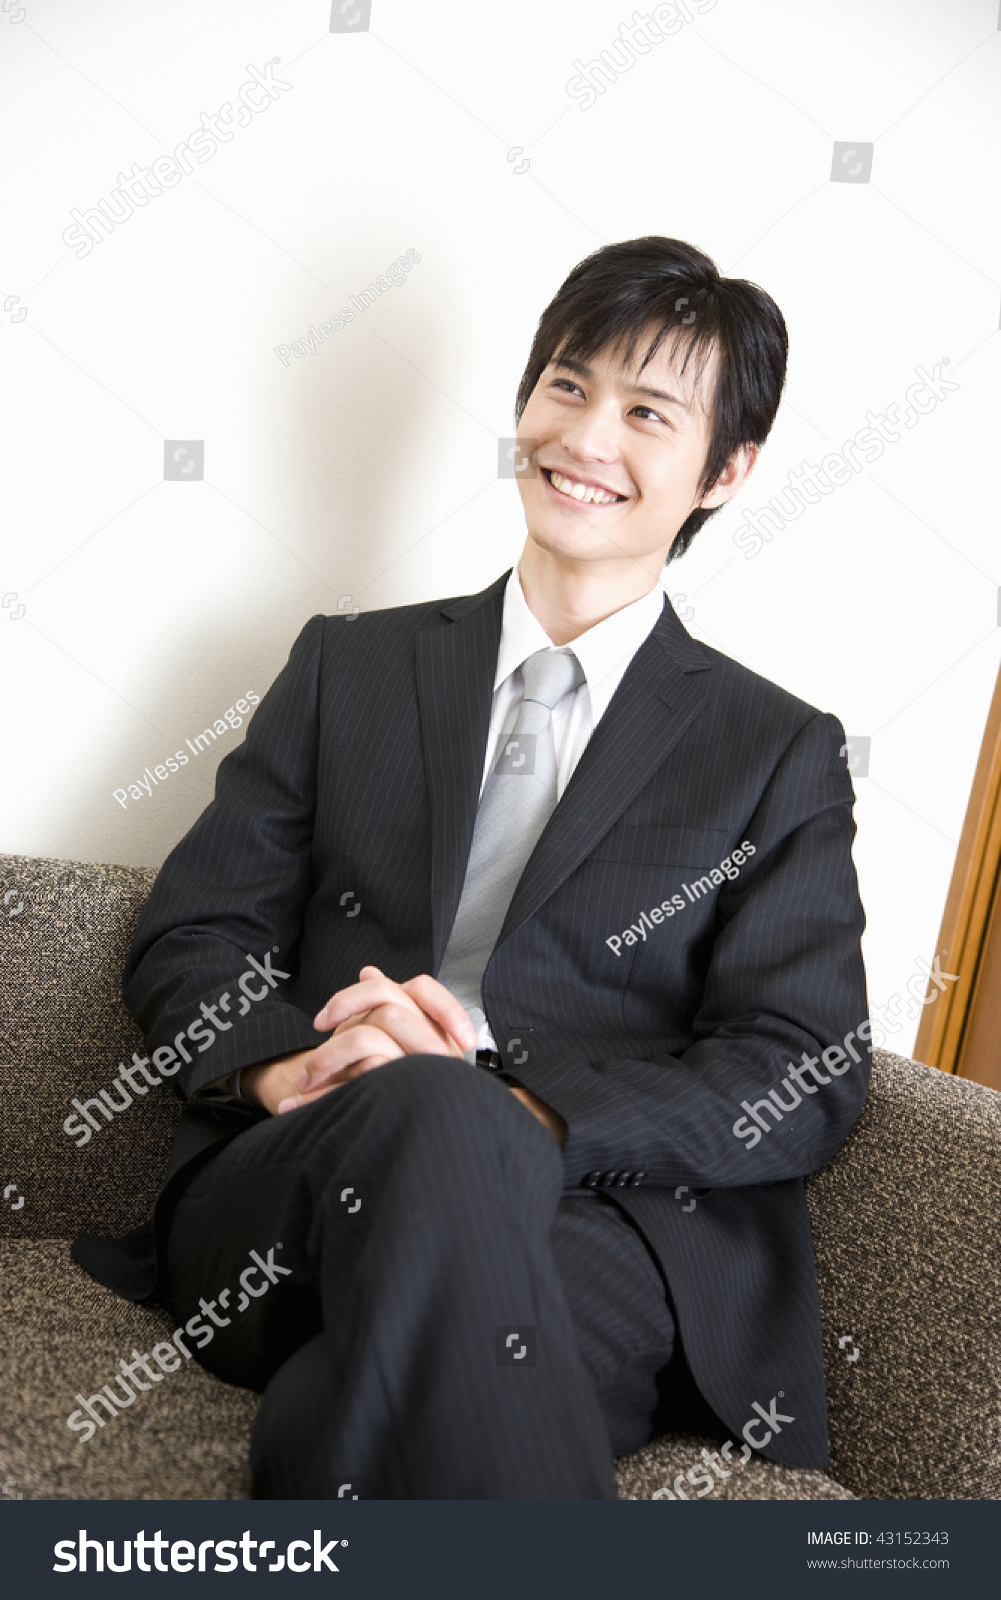 Young Japanese Businessman Wearing Suit Is Smiling Stock Photo ...